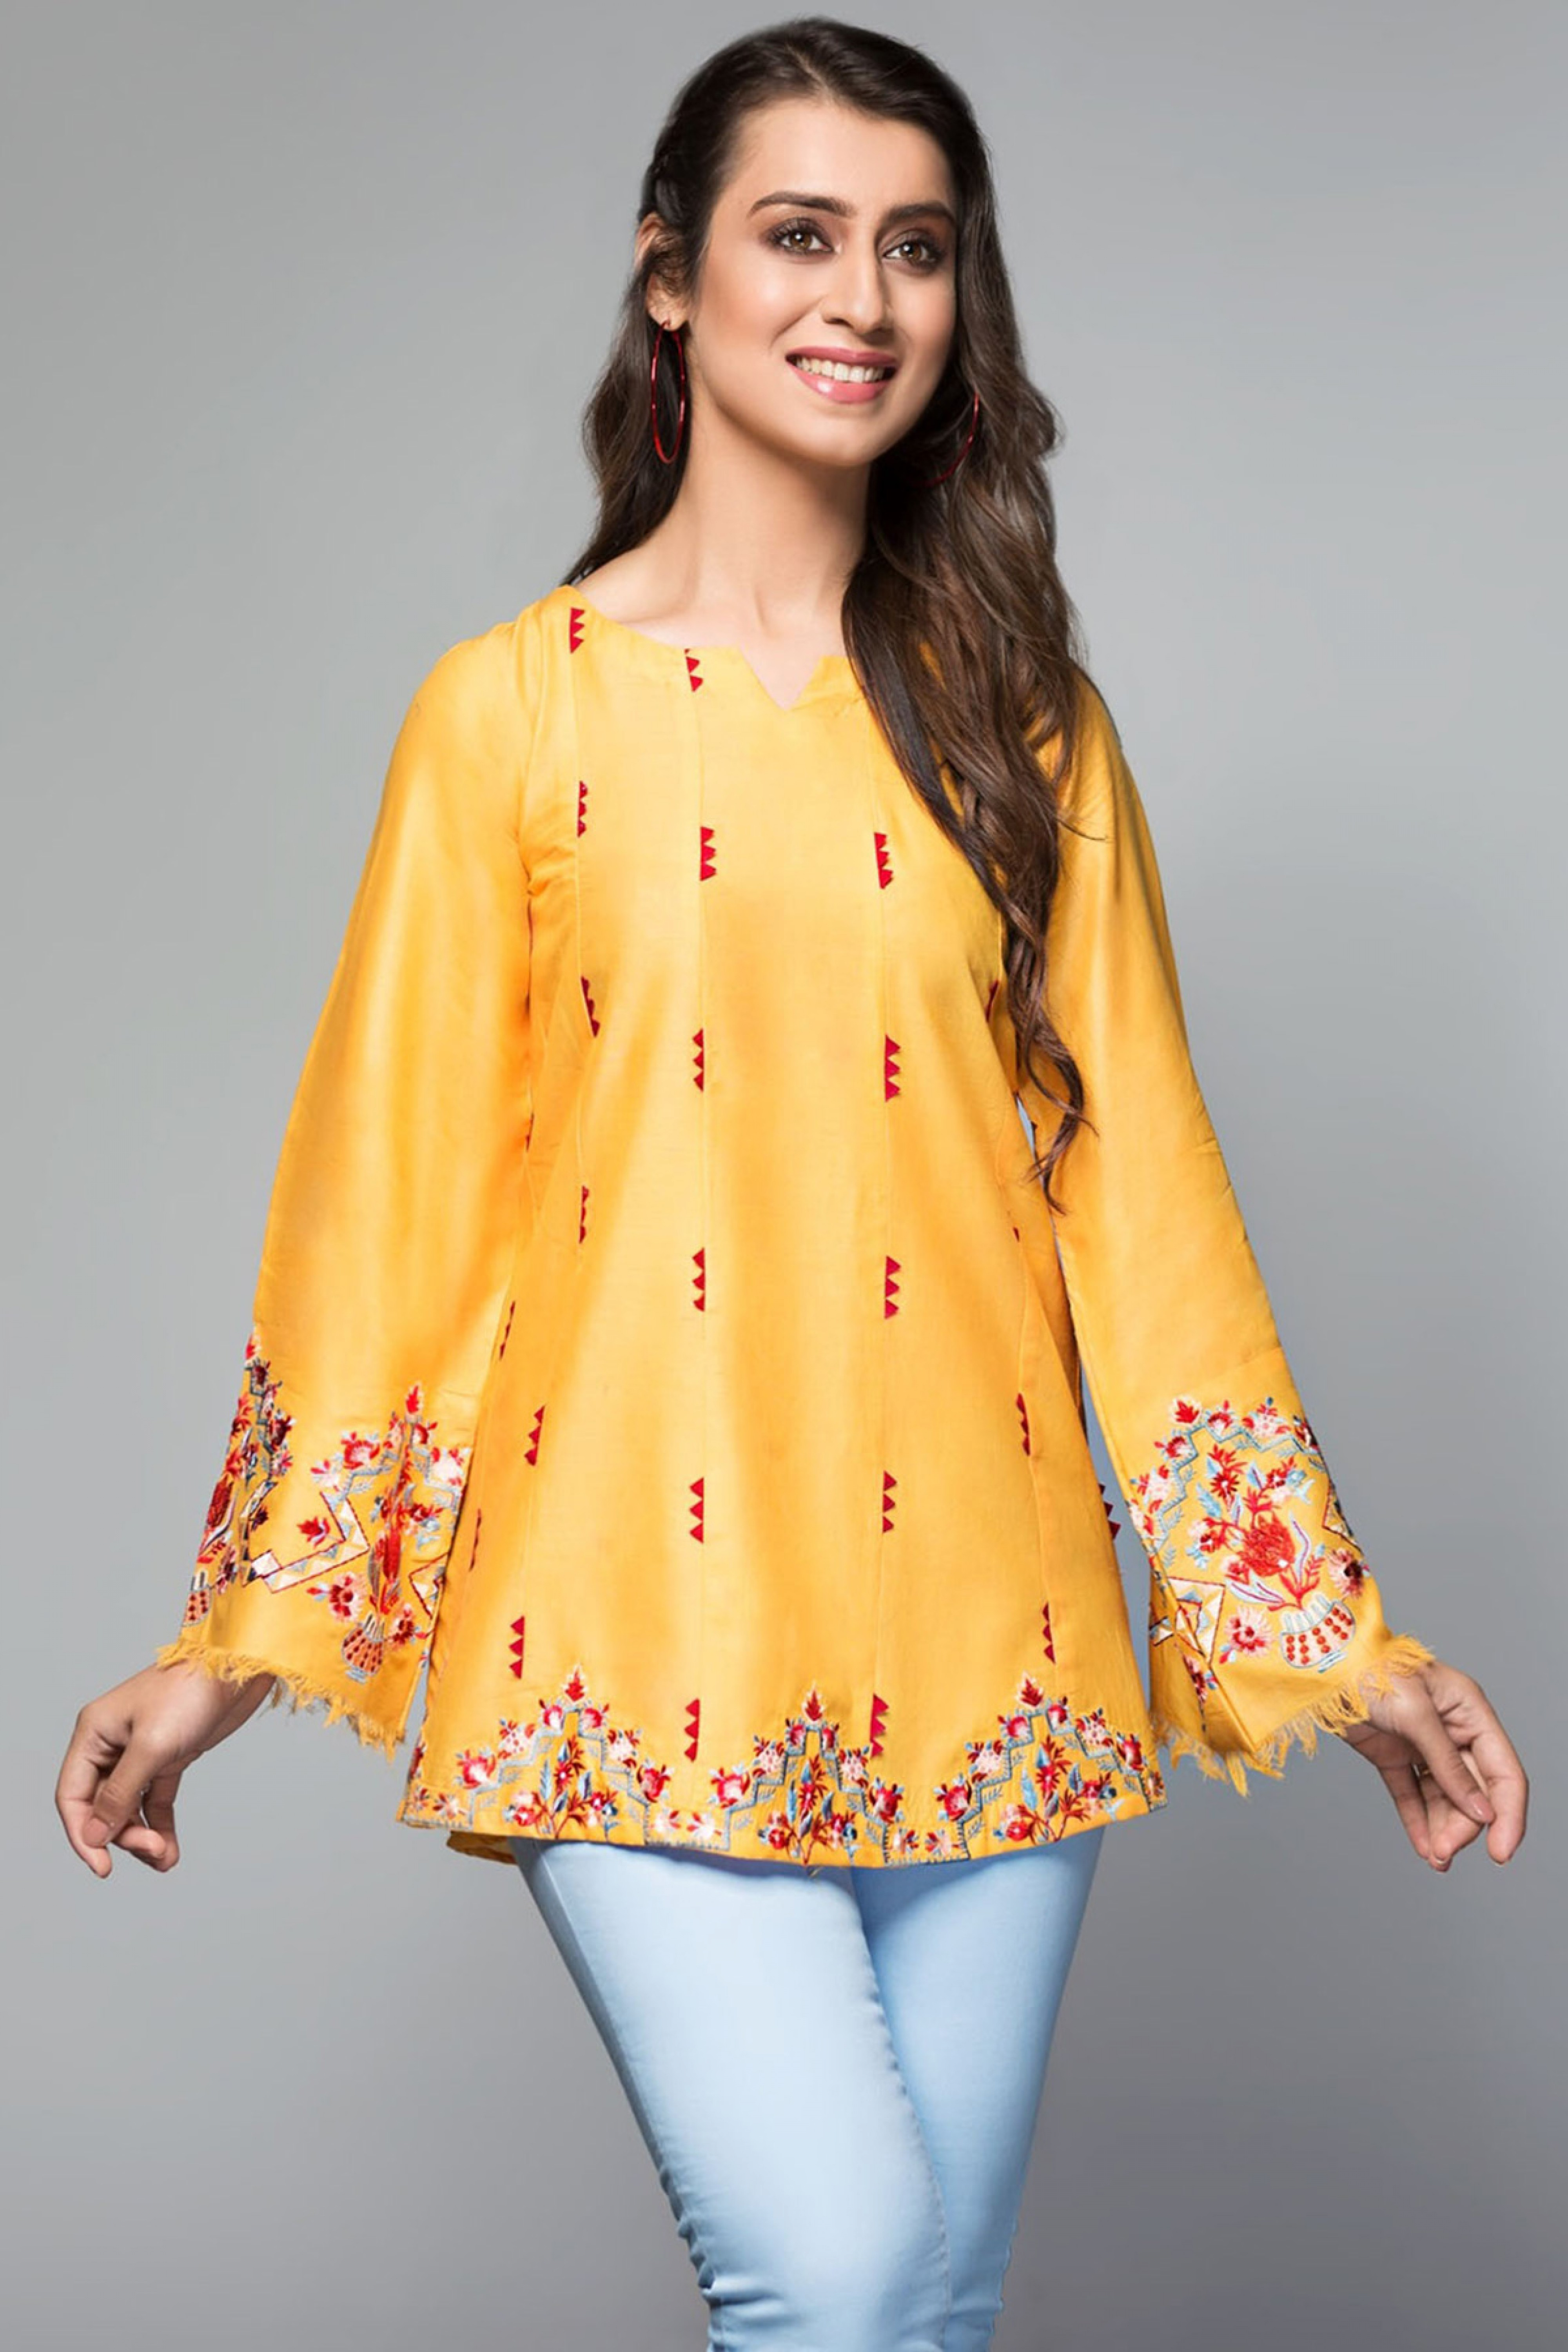 CITRINE(Embroidered Top)